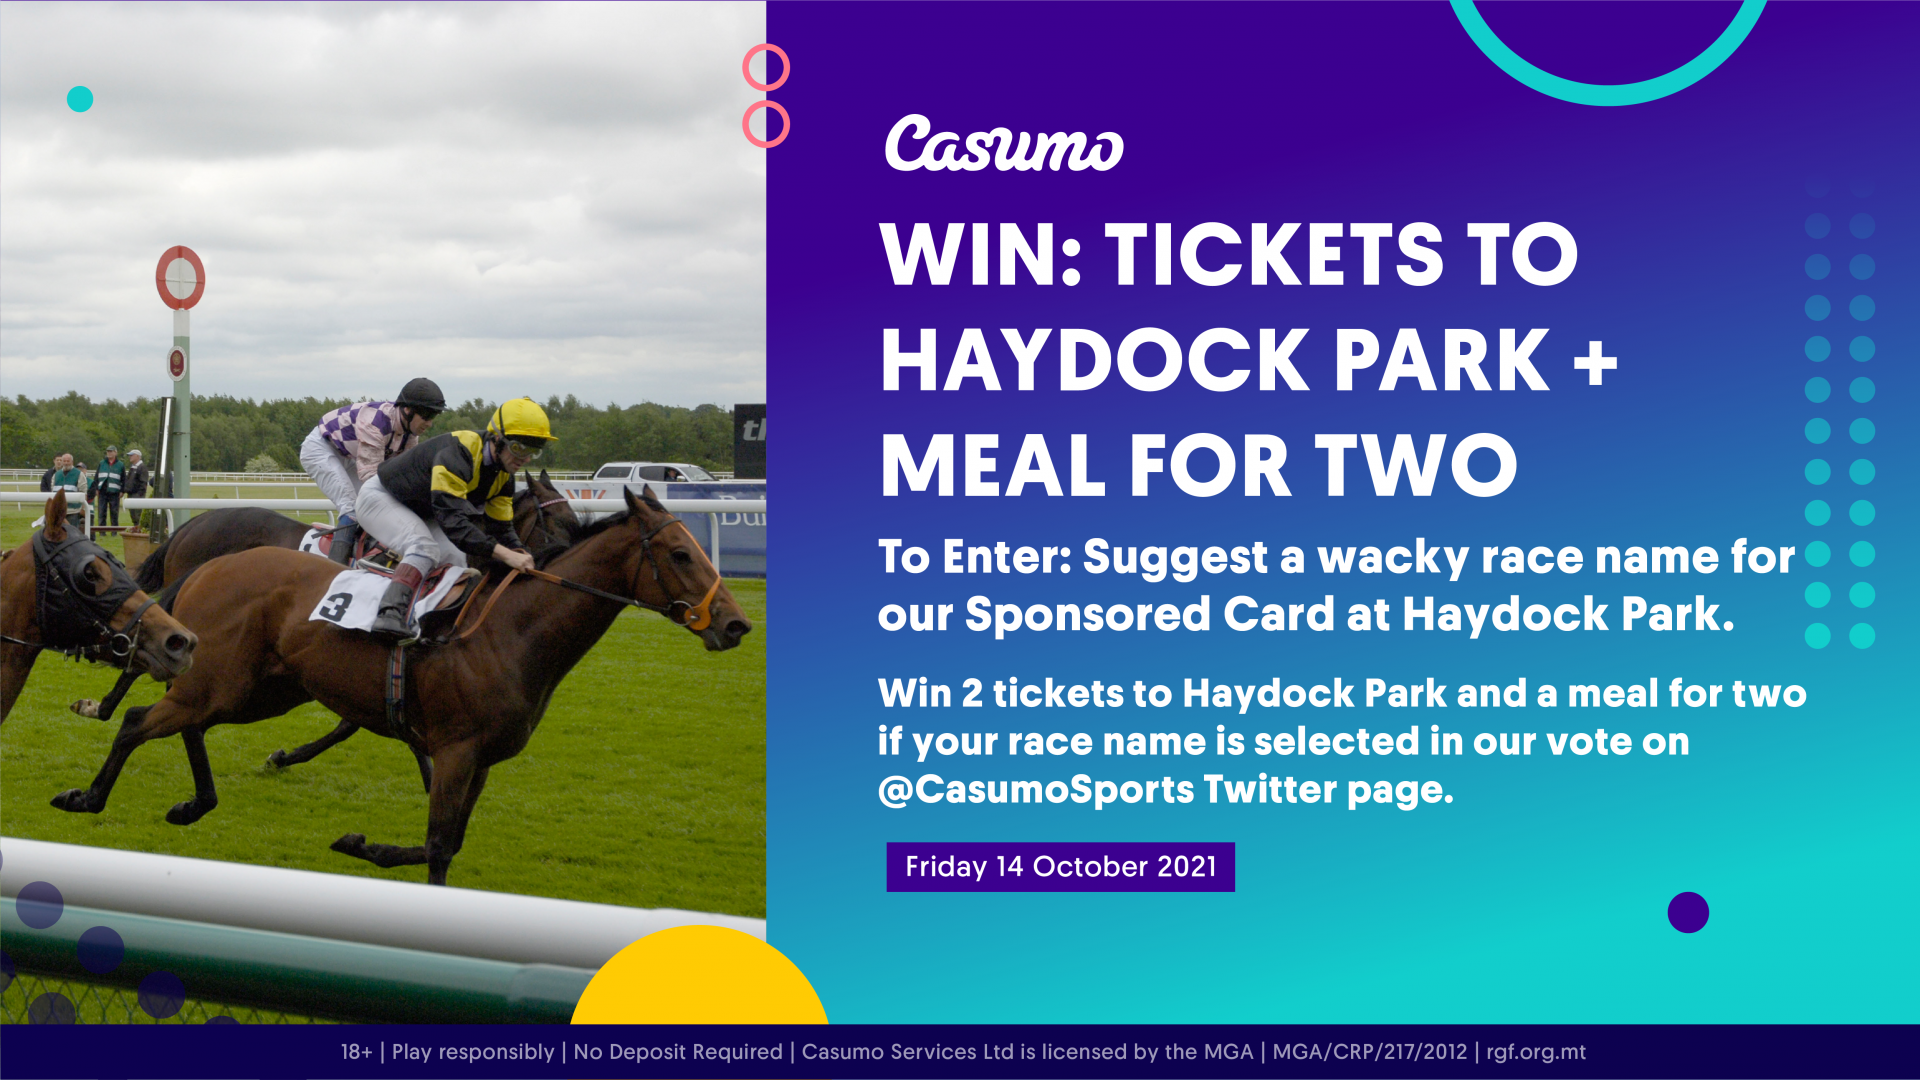 Name a race at Haydock